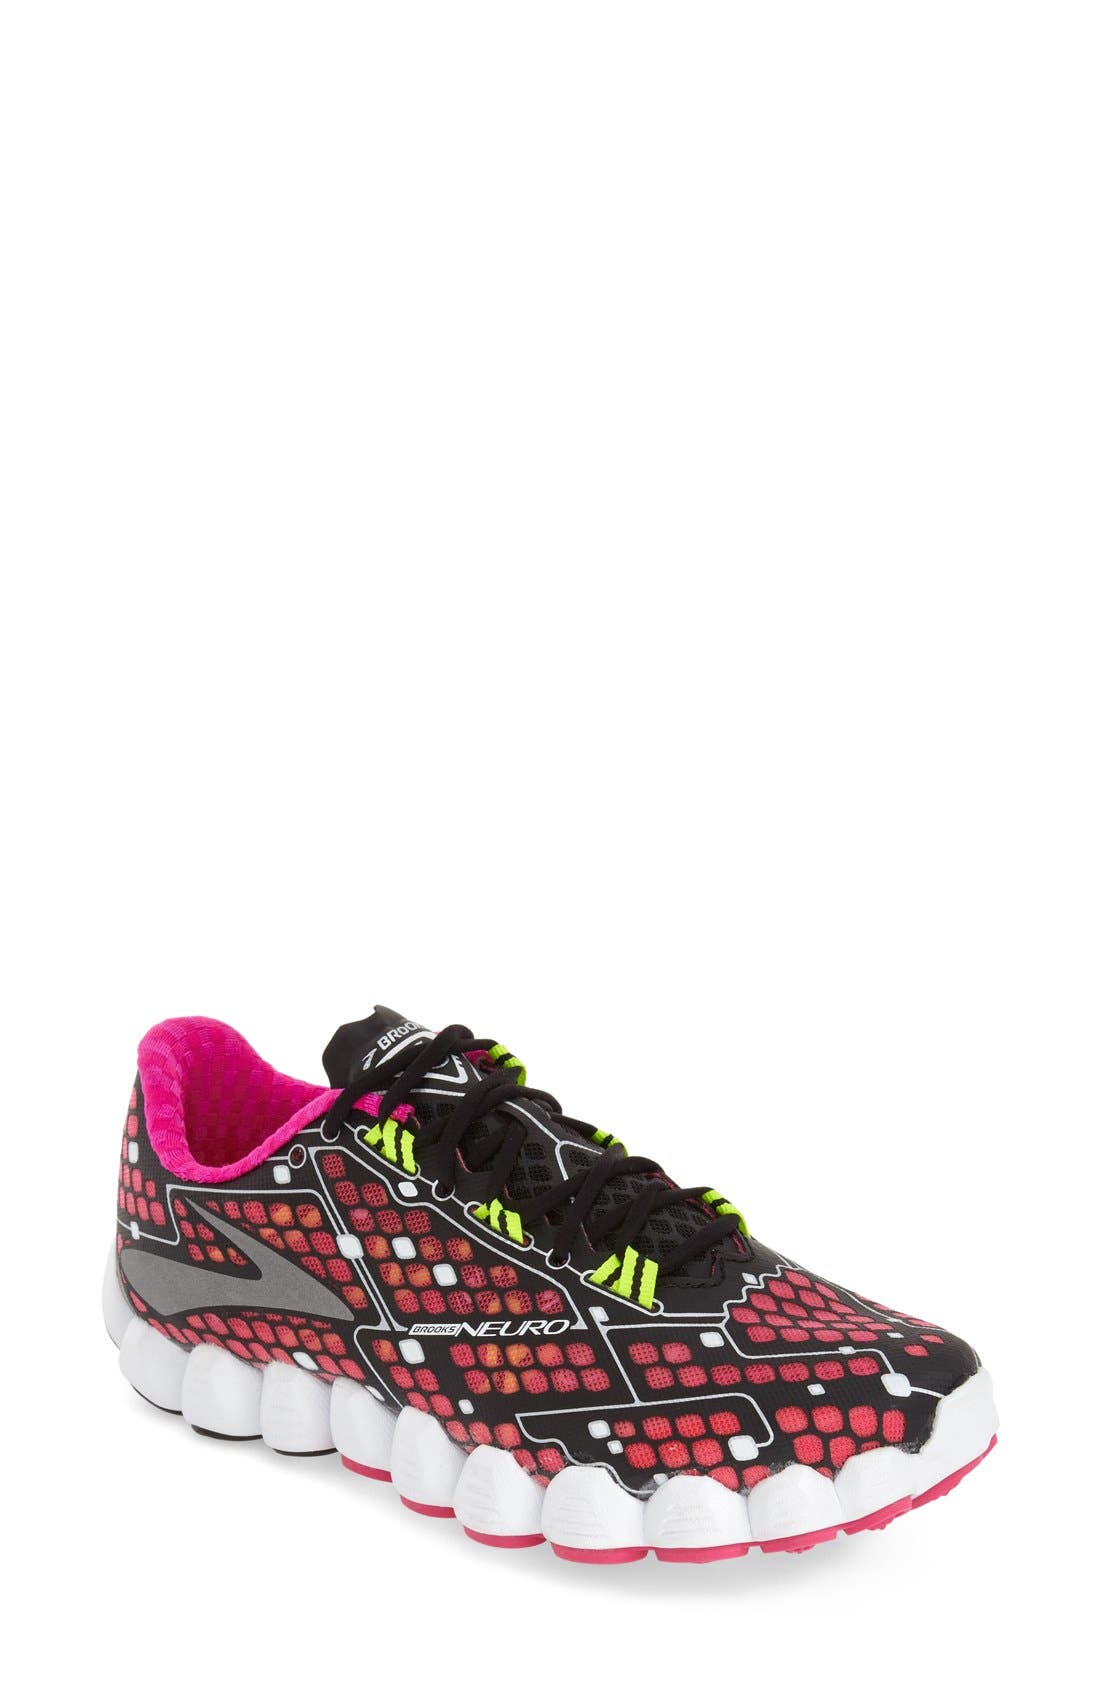 'Neuro' Running Shoe,                             Main thumbnail 1, color,                             Pink/ Black